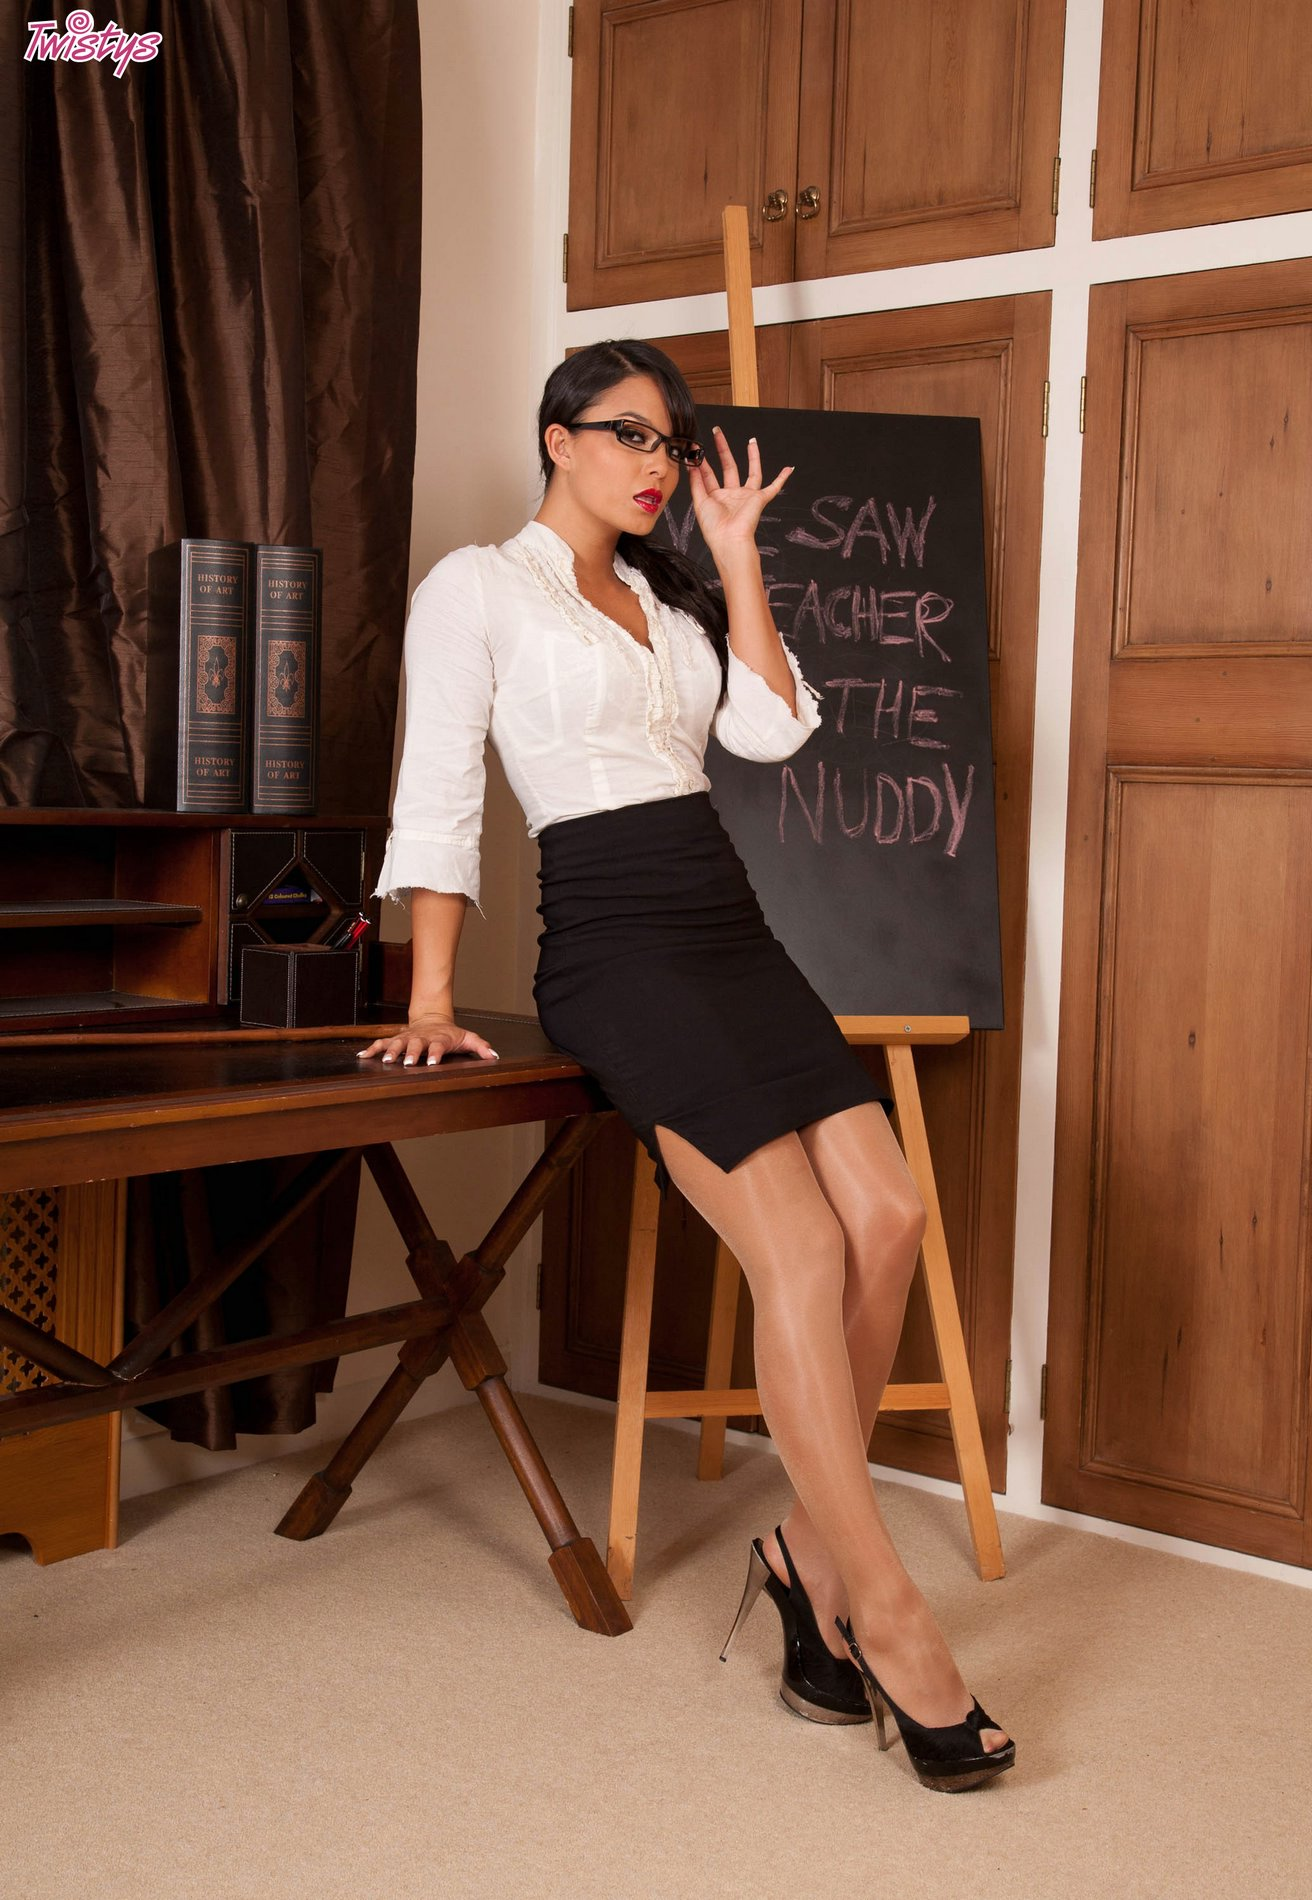 Professor Sasha Cane In Stockings And Heels Strips For -4095